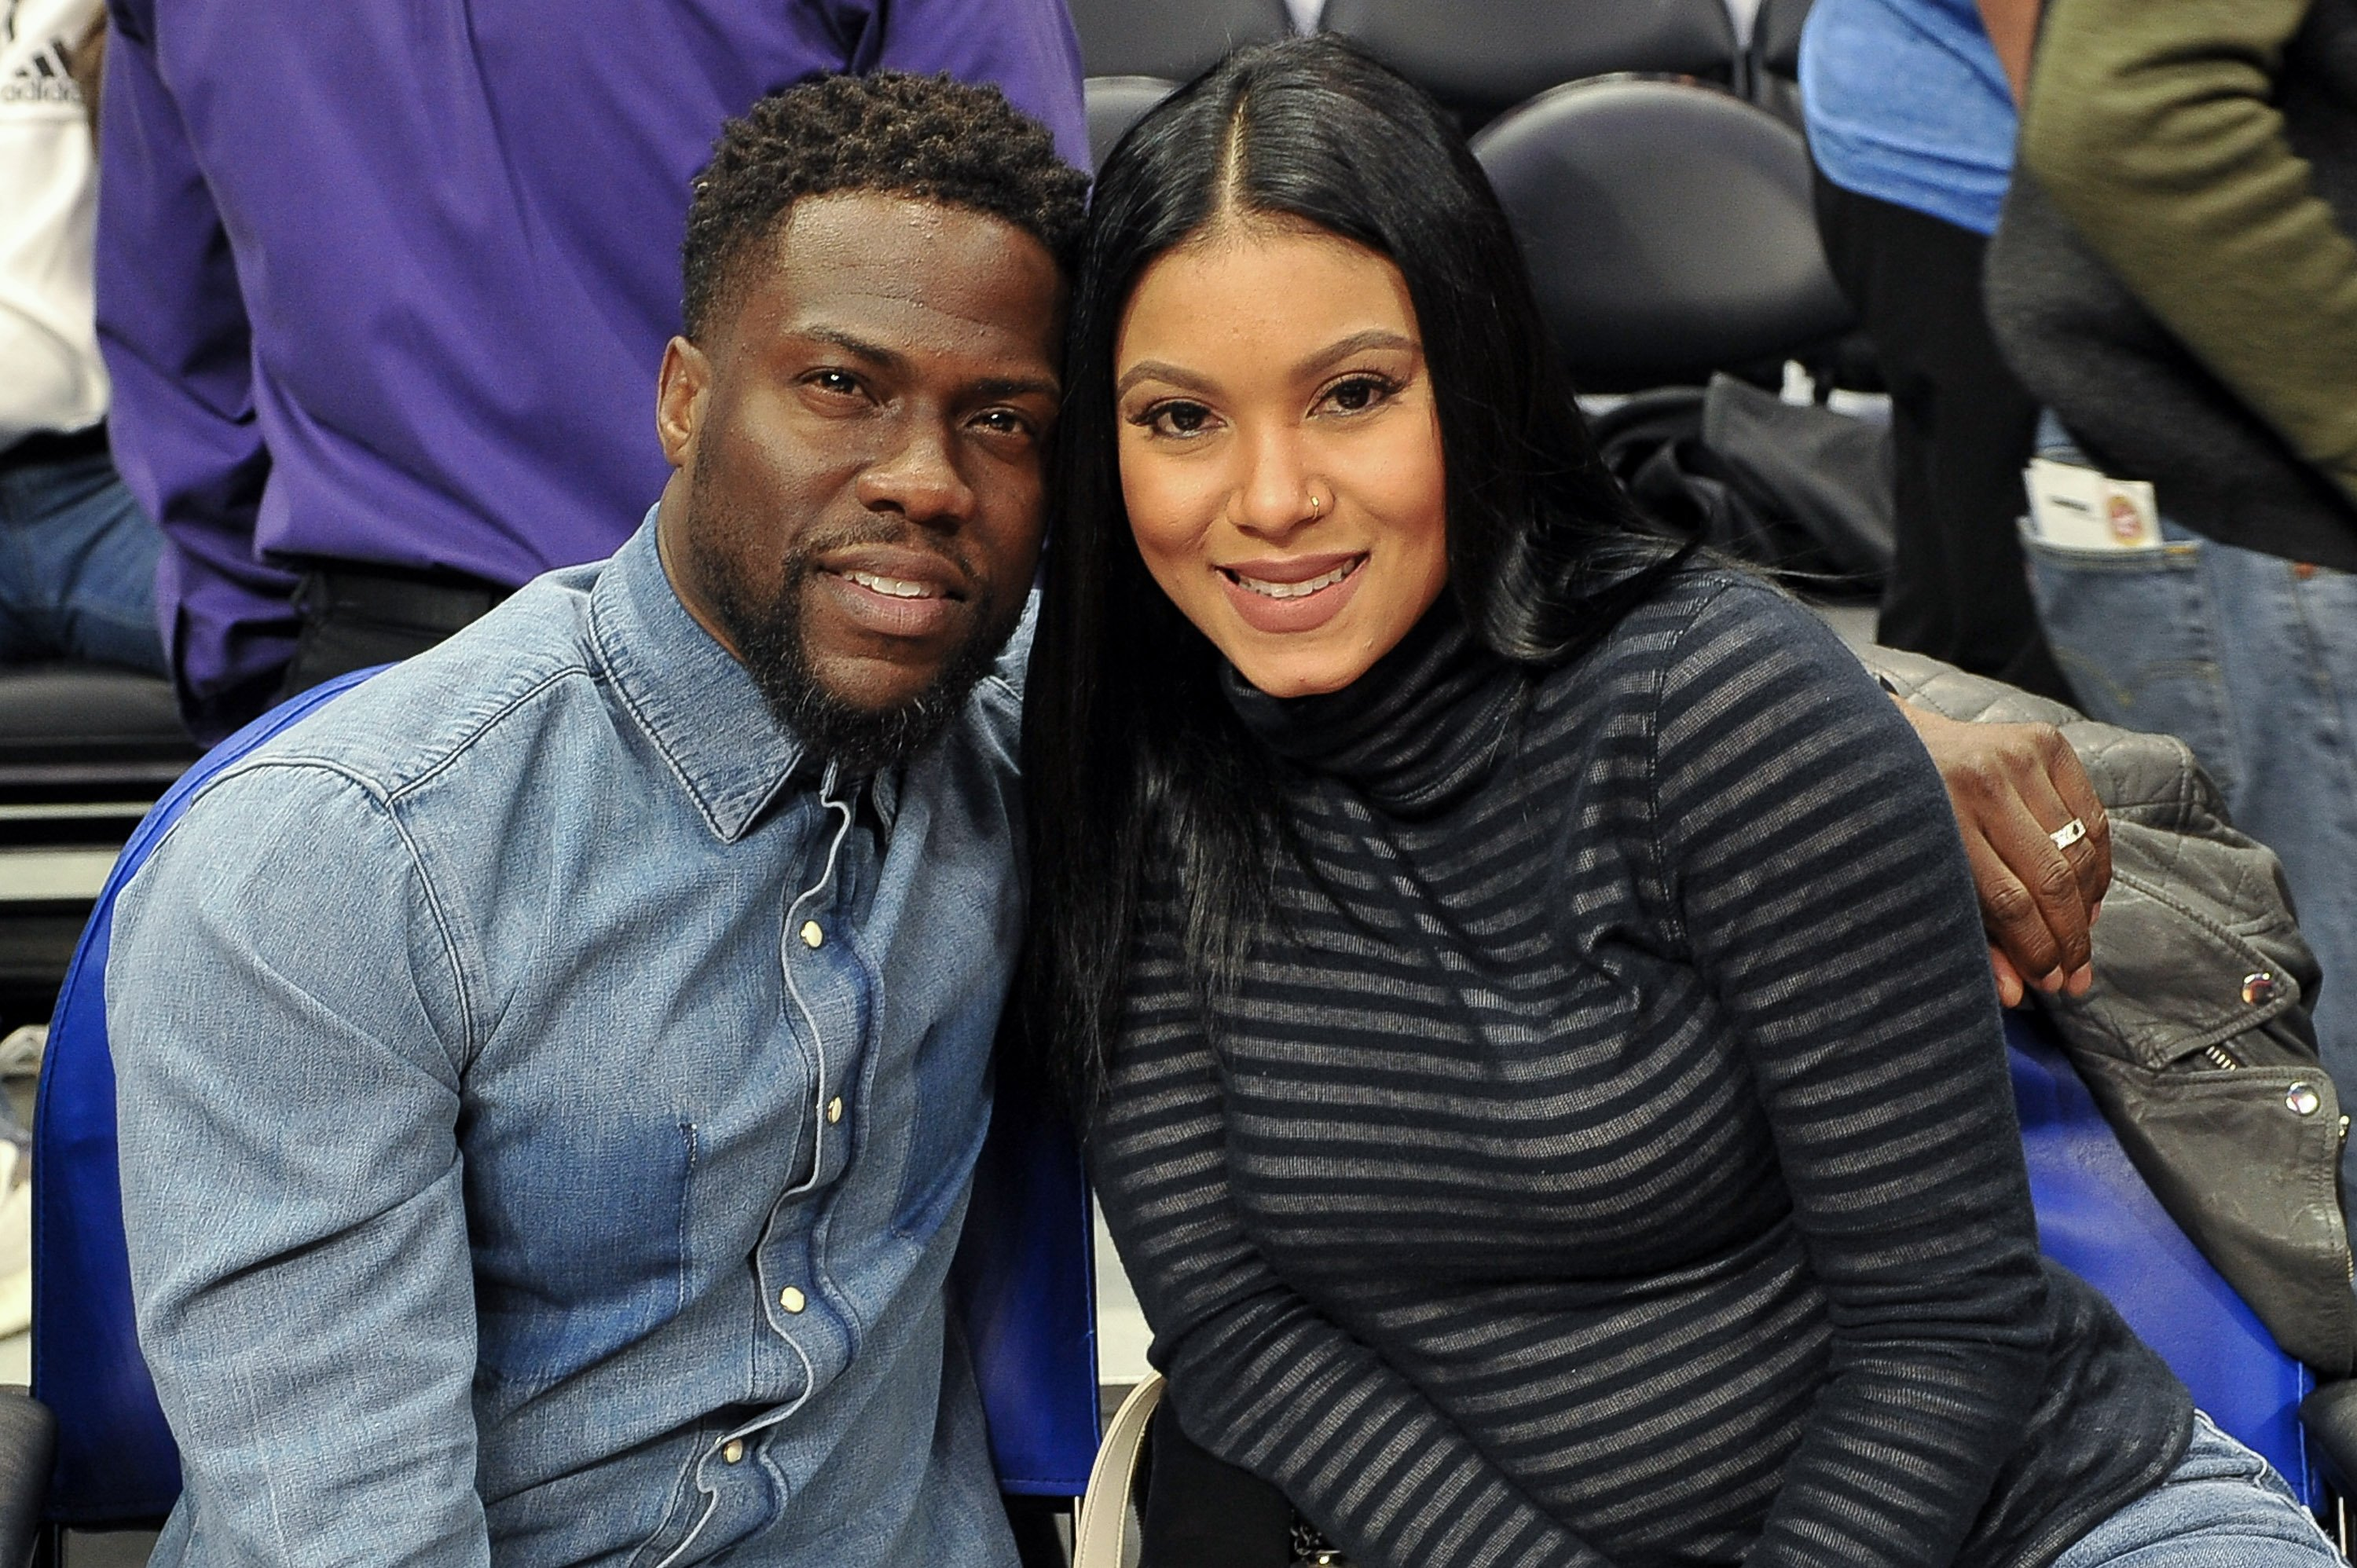 Kevin & Eniko Hart at a basketball game on Jan. 22, 2018 in California | Photo: Getty Images